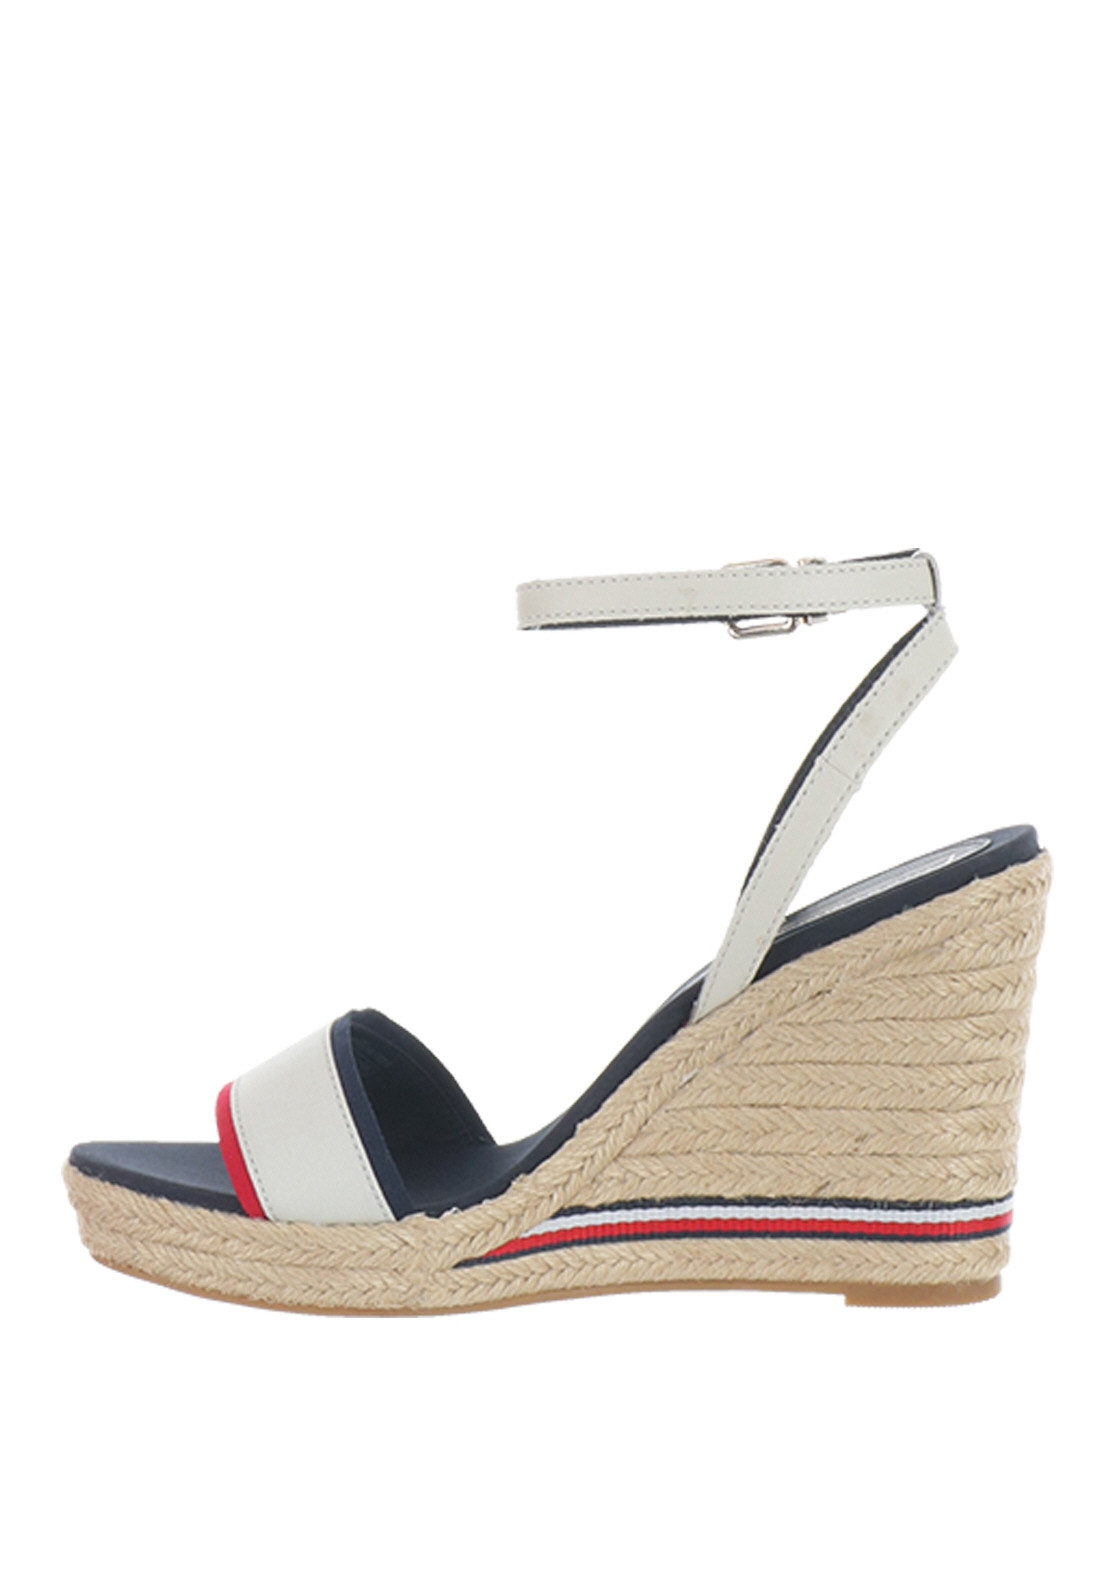 ba91eea21b Tommy Hilfiger Womens Elena Wedge Sandals, White Multi | McElhinneys